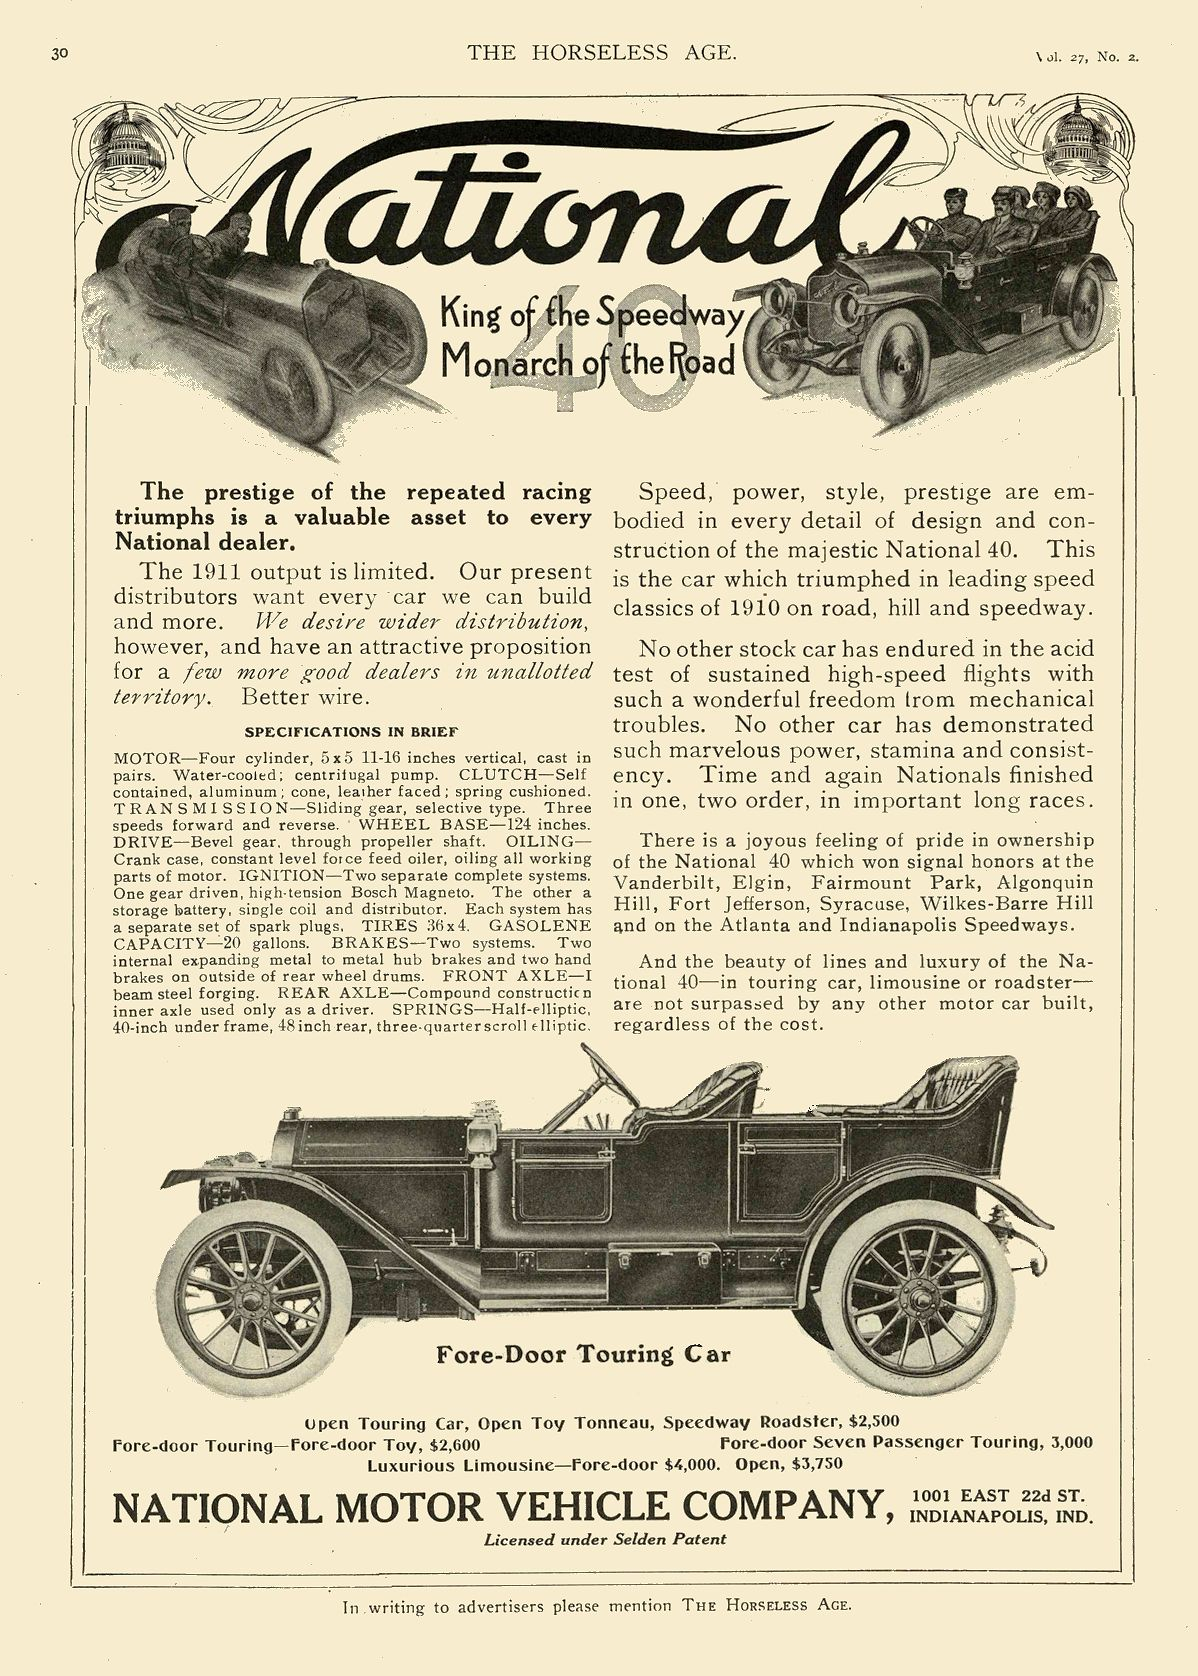 1911 1 11 NATIONAL Monarch of the Road King of the Speedway NATIONAL MOTOR VEHICLE COMPANY Indianapolis, IND THE HORSELESS AGE January 11, 1911 8.25″x12″ page 30